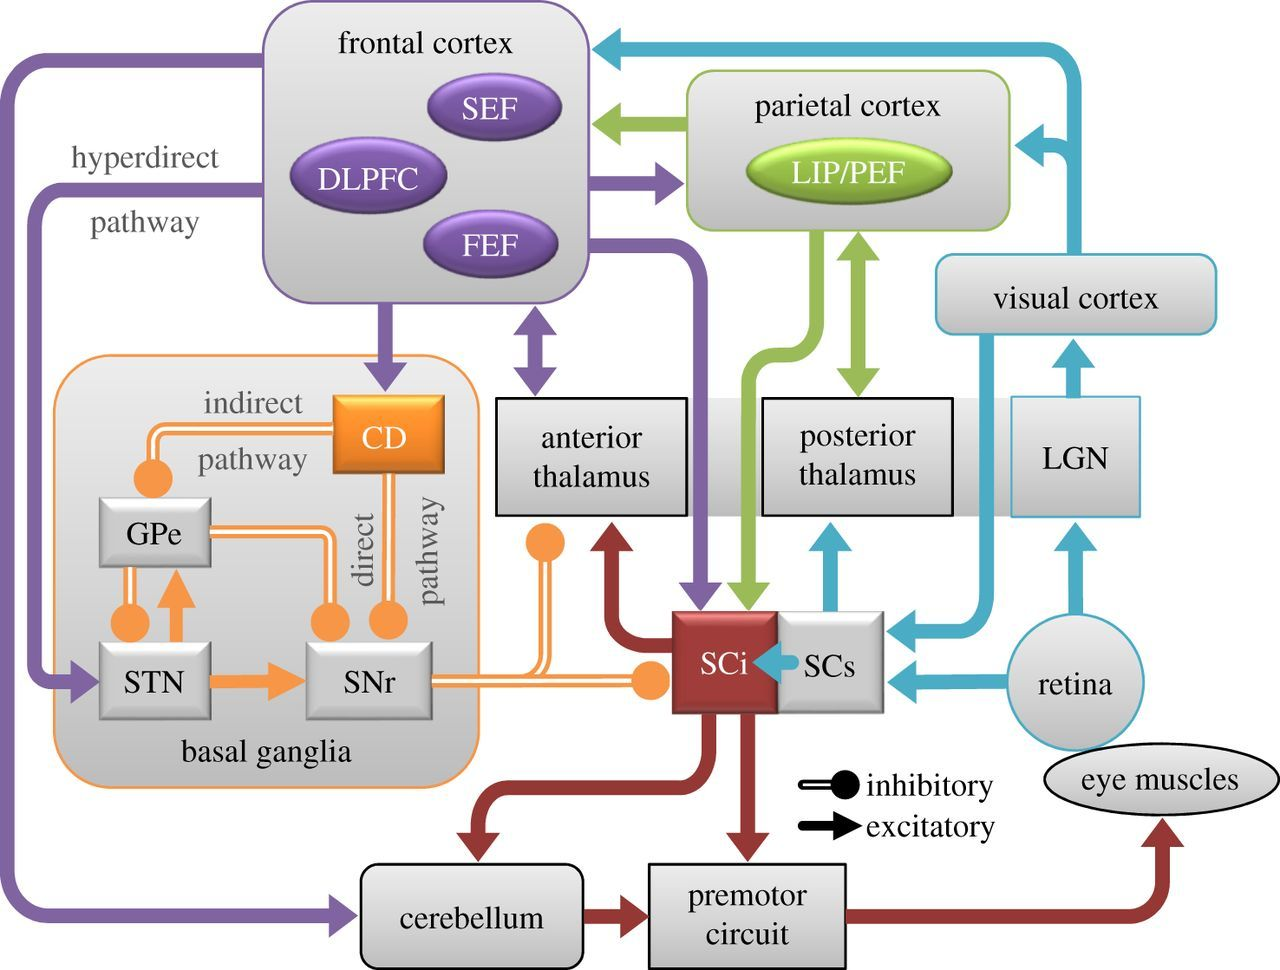 Mechanisms Of Saccade Suppression Revealed In The Anti